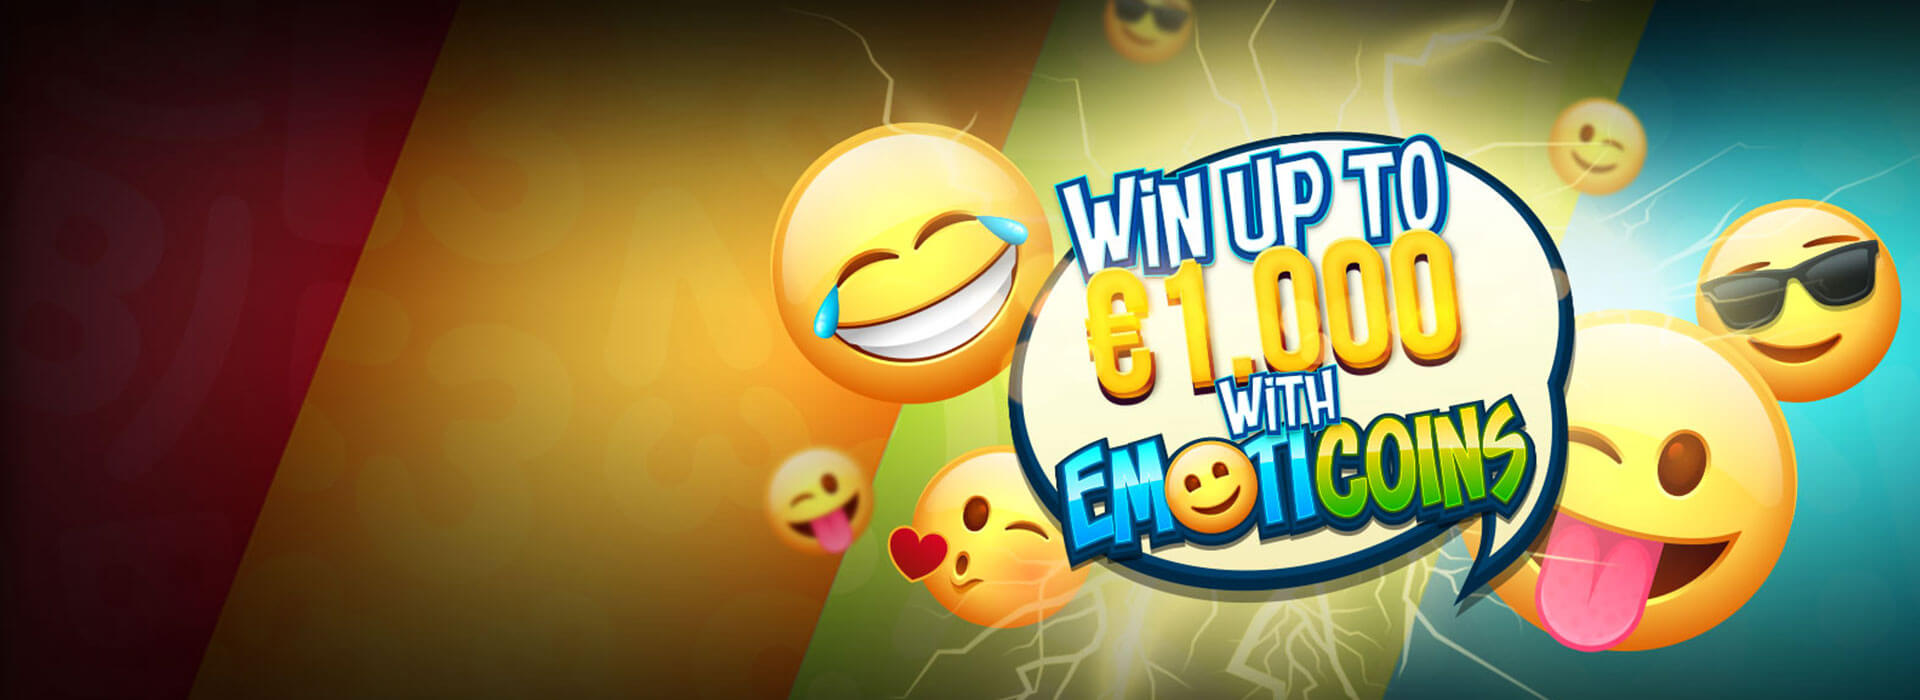 The €10,000 EmotiCoins Prize Draw!